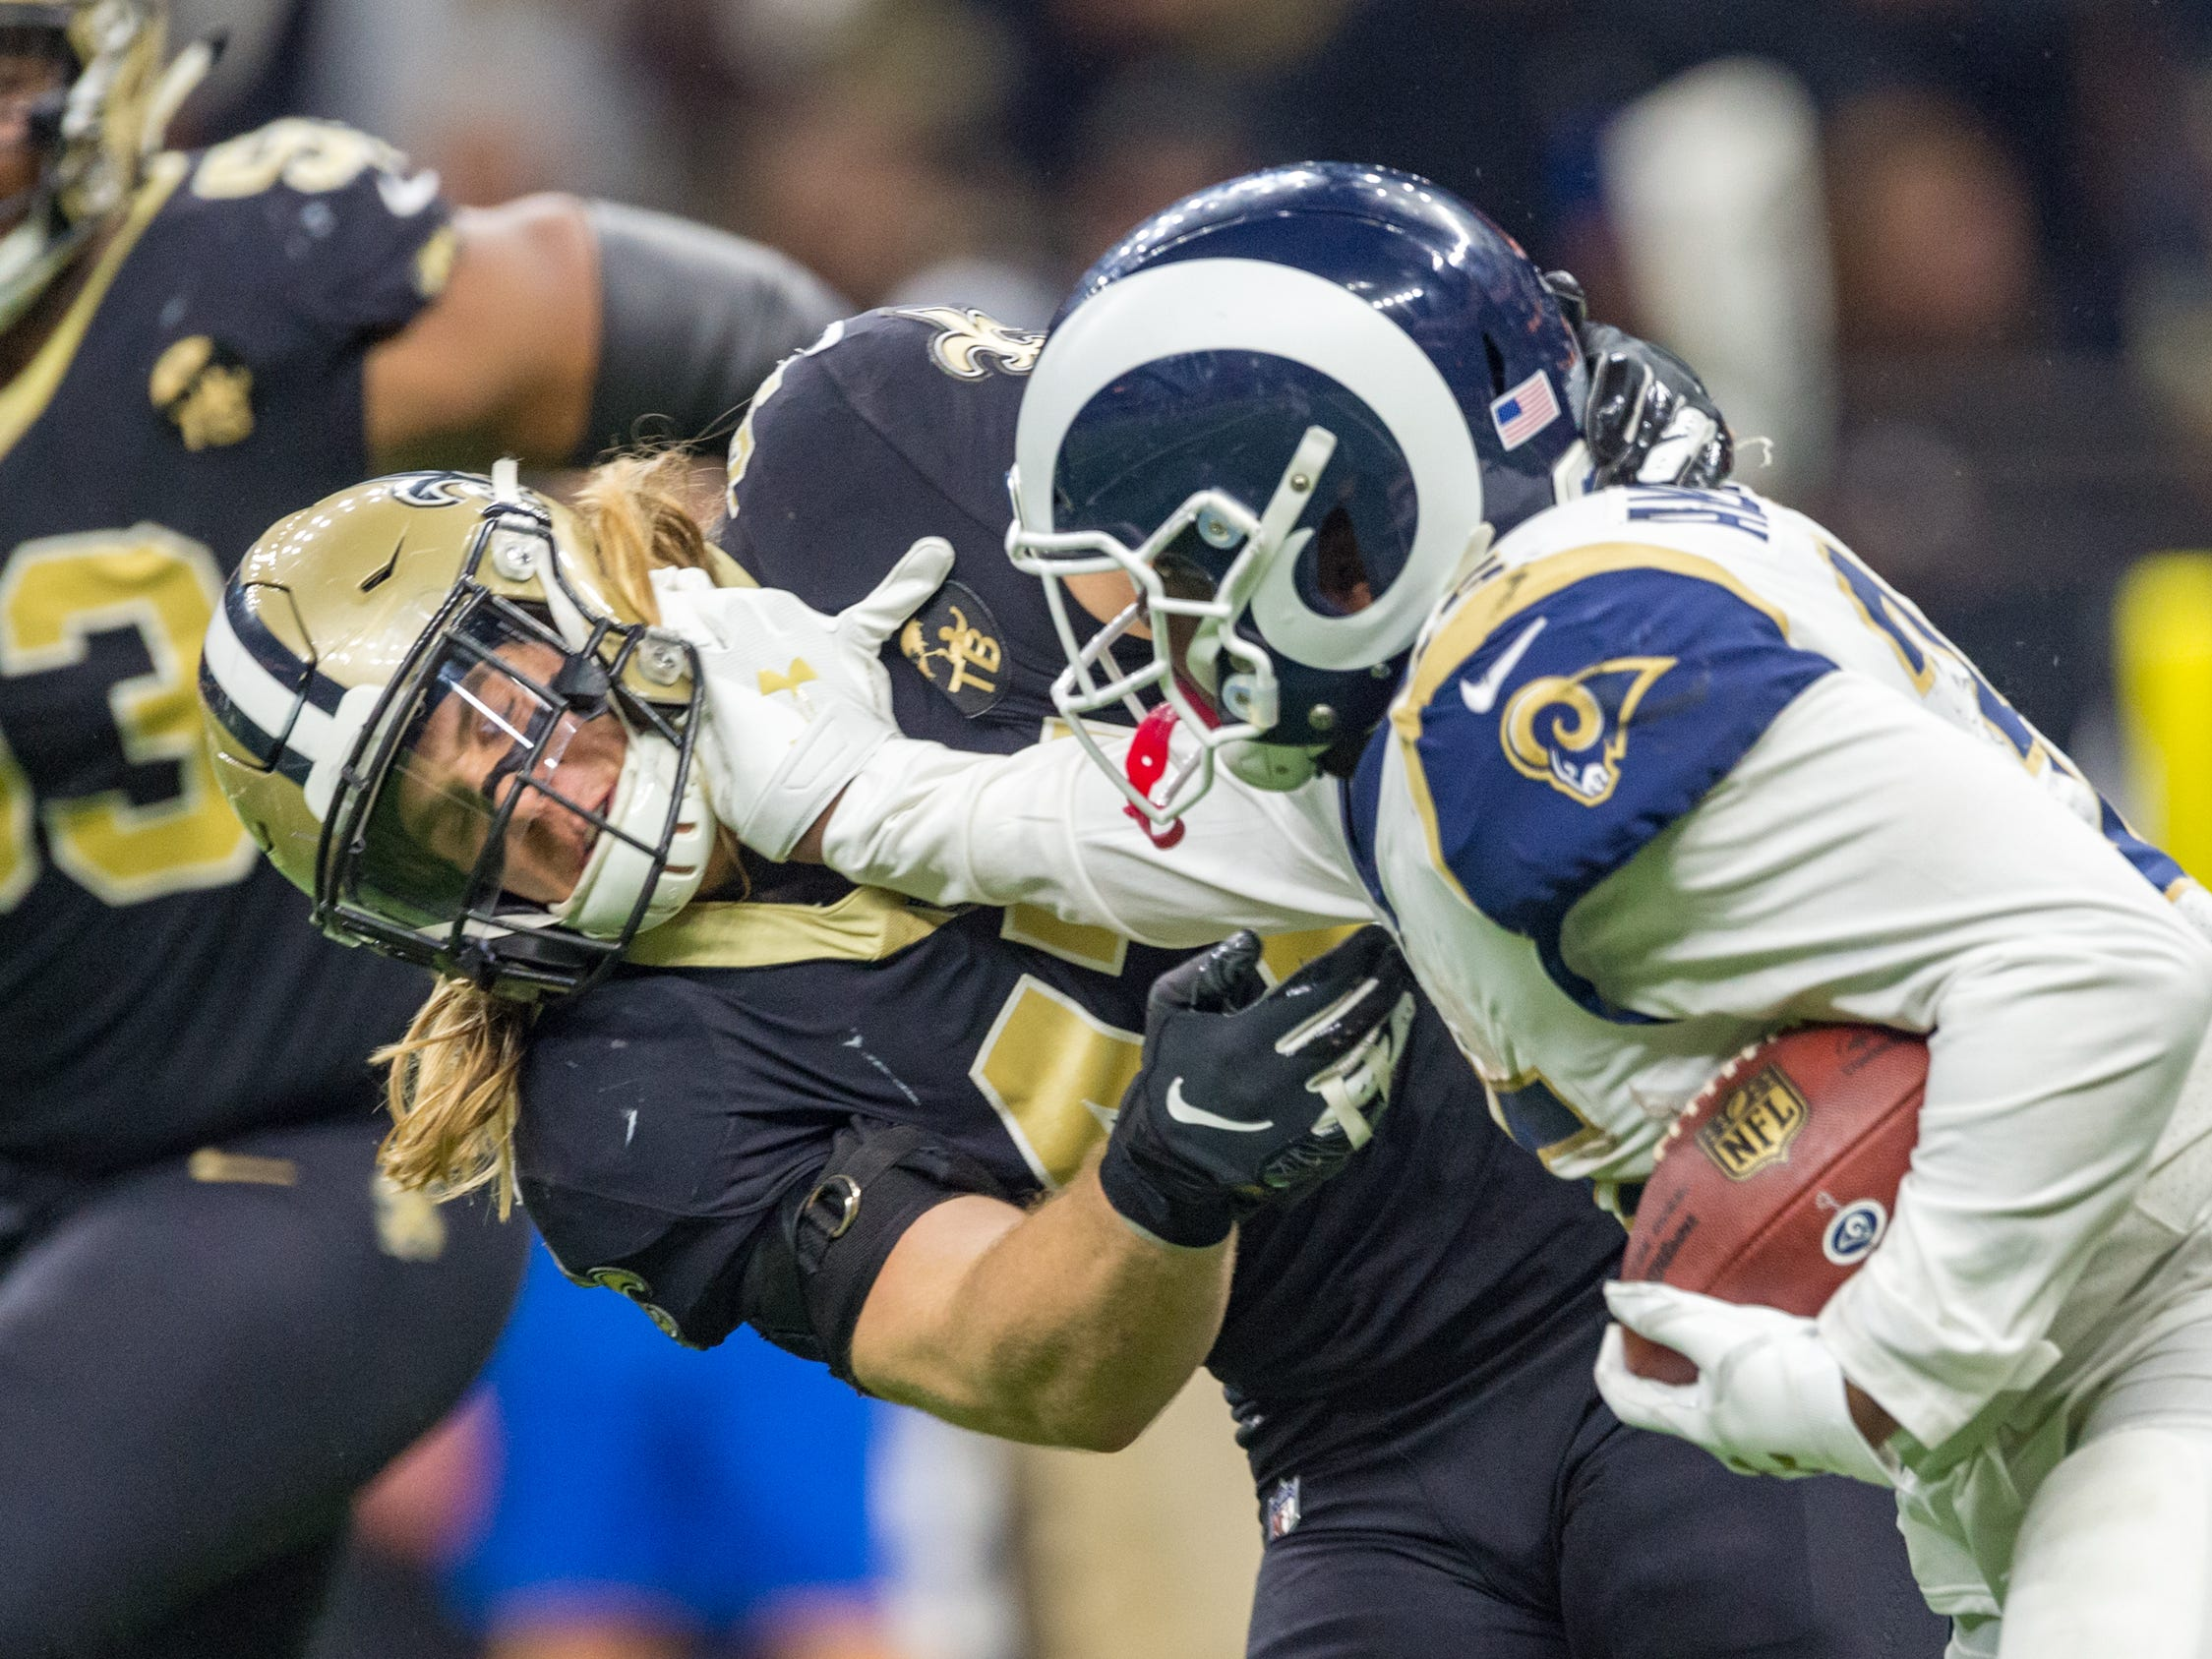 Rams runningback CJ Anderson stiff arms Saints linebacker Alex Anzalone during the NFC Championship playoff football game between the New Orleans Saints and the Los Angeles Rams at the Mercedes-Benz Superdome in New Orleans. Sunday, Jan. 20, 2019.